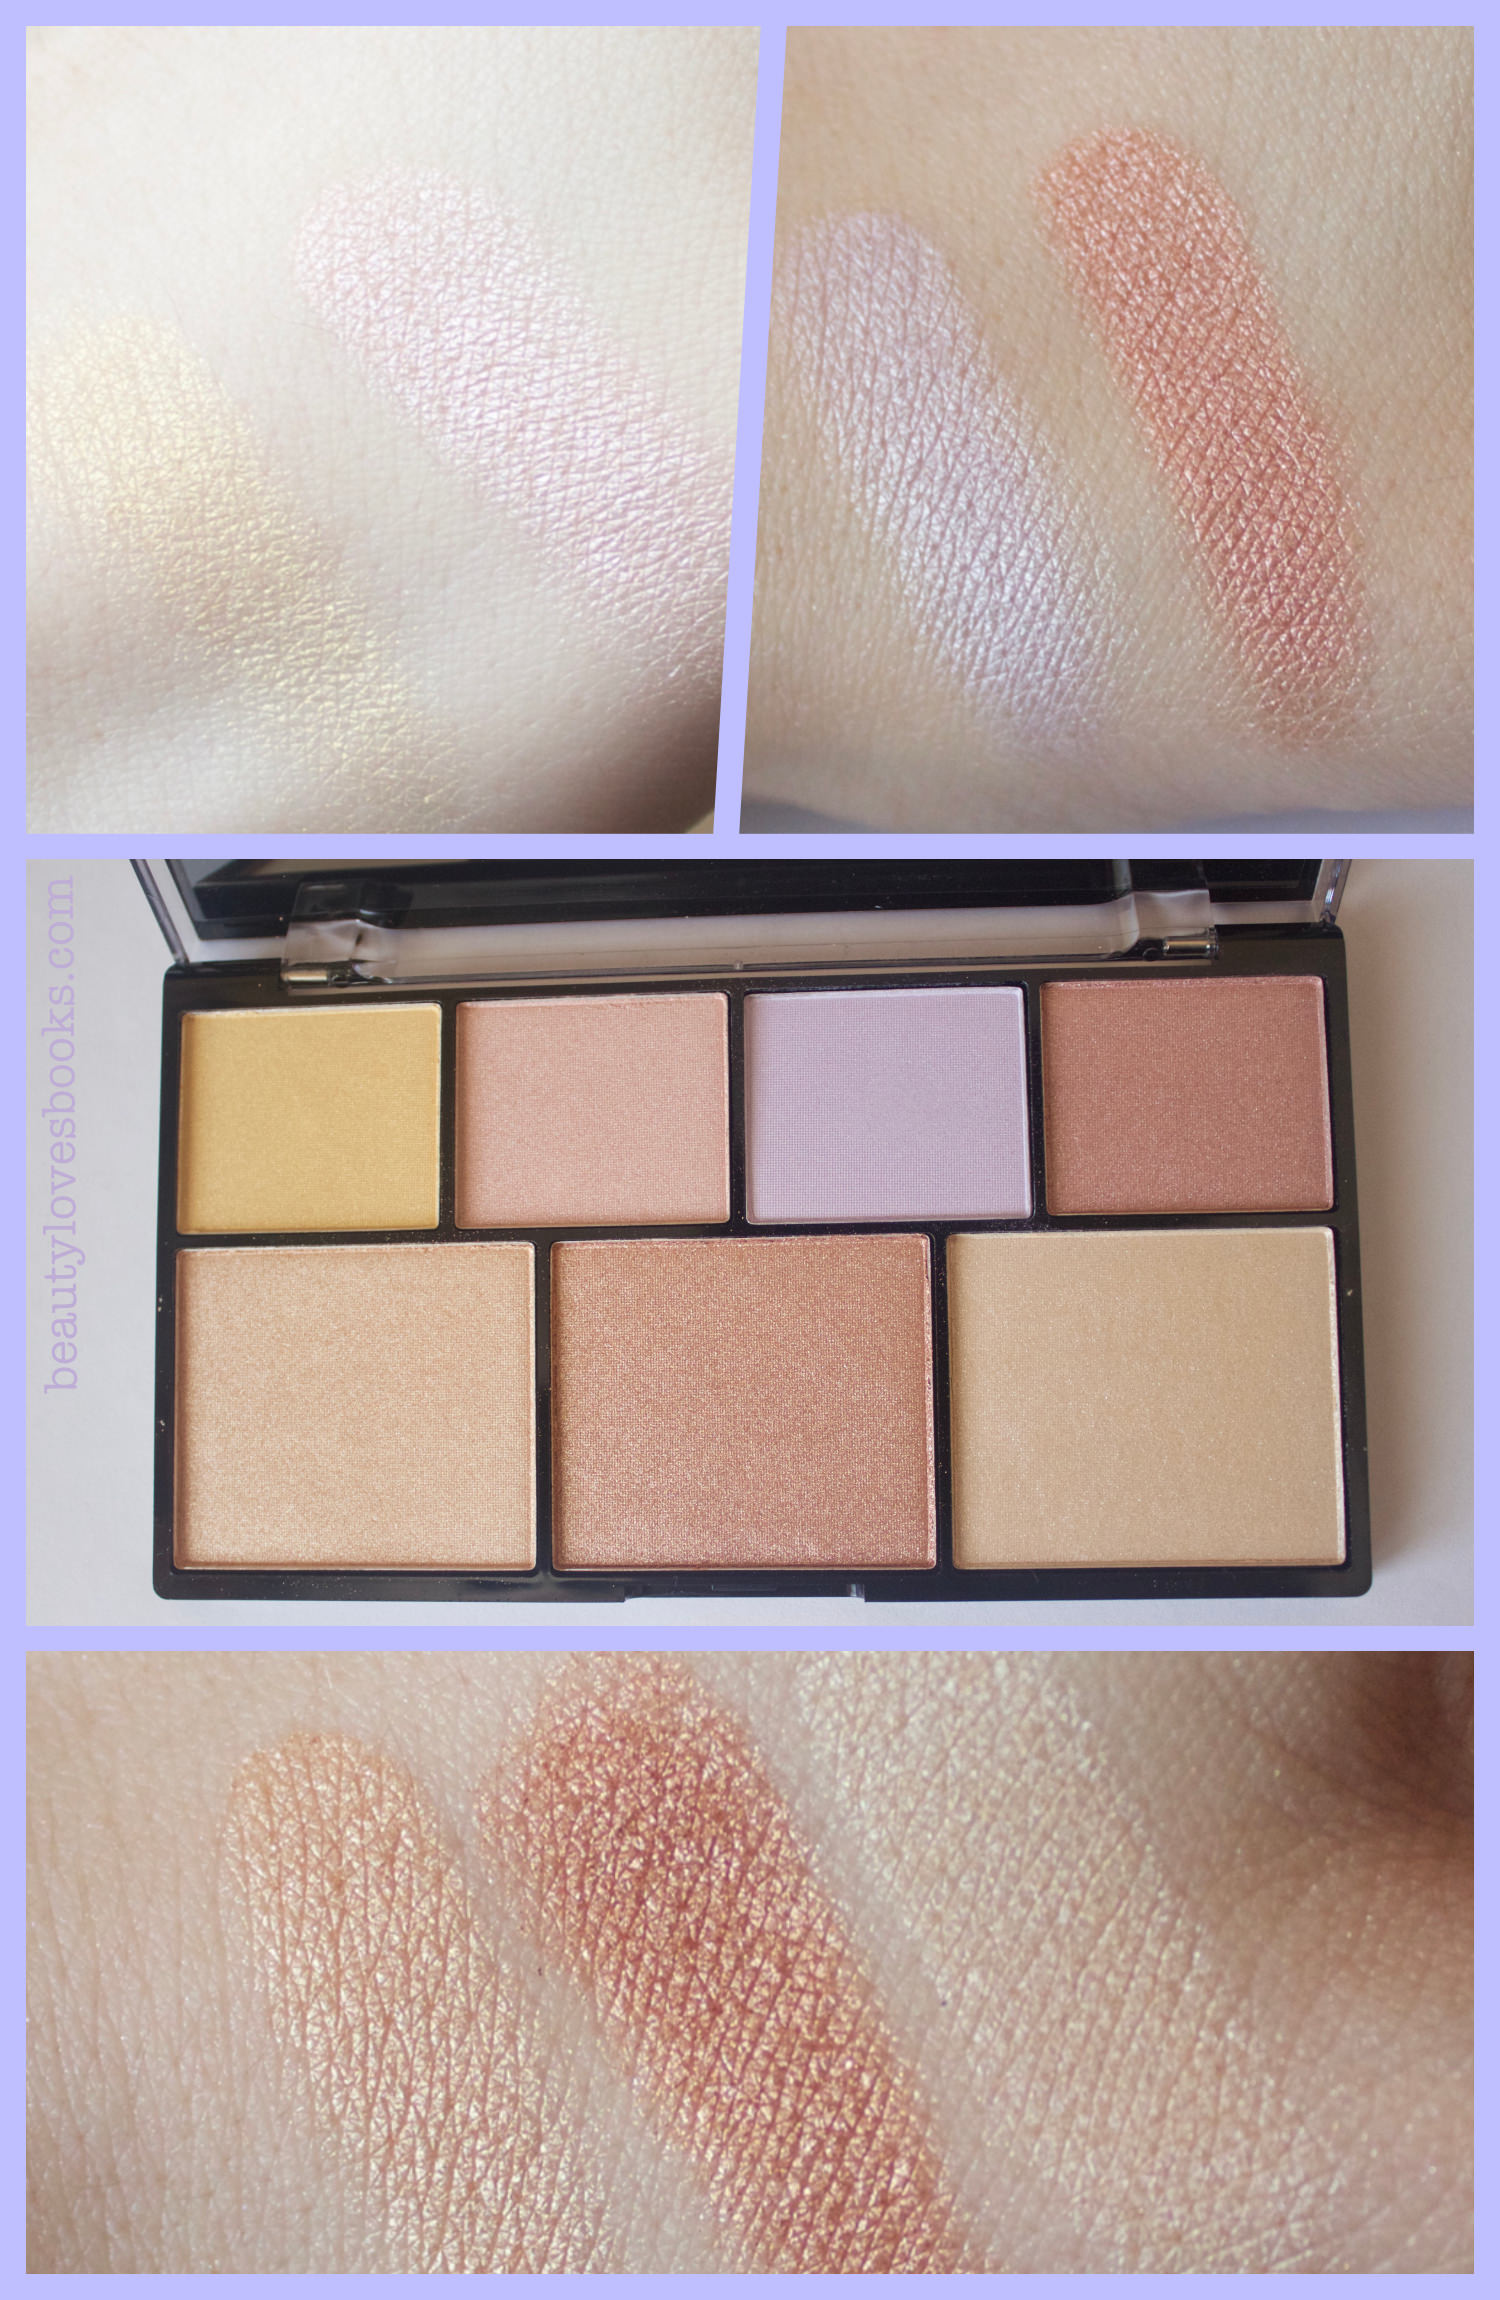 NYX Strobe of Genius illuminating palette -  swatches